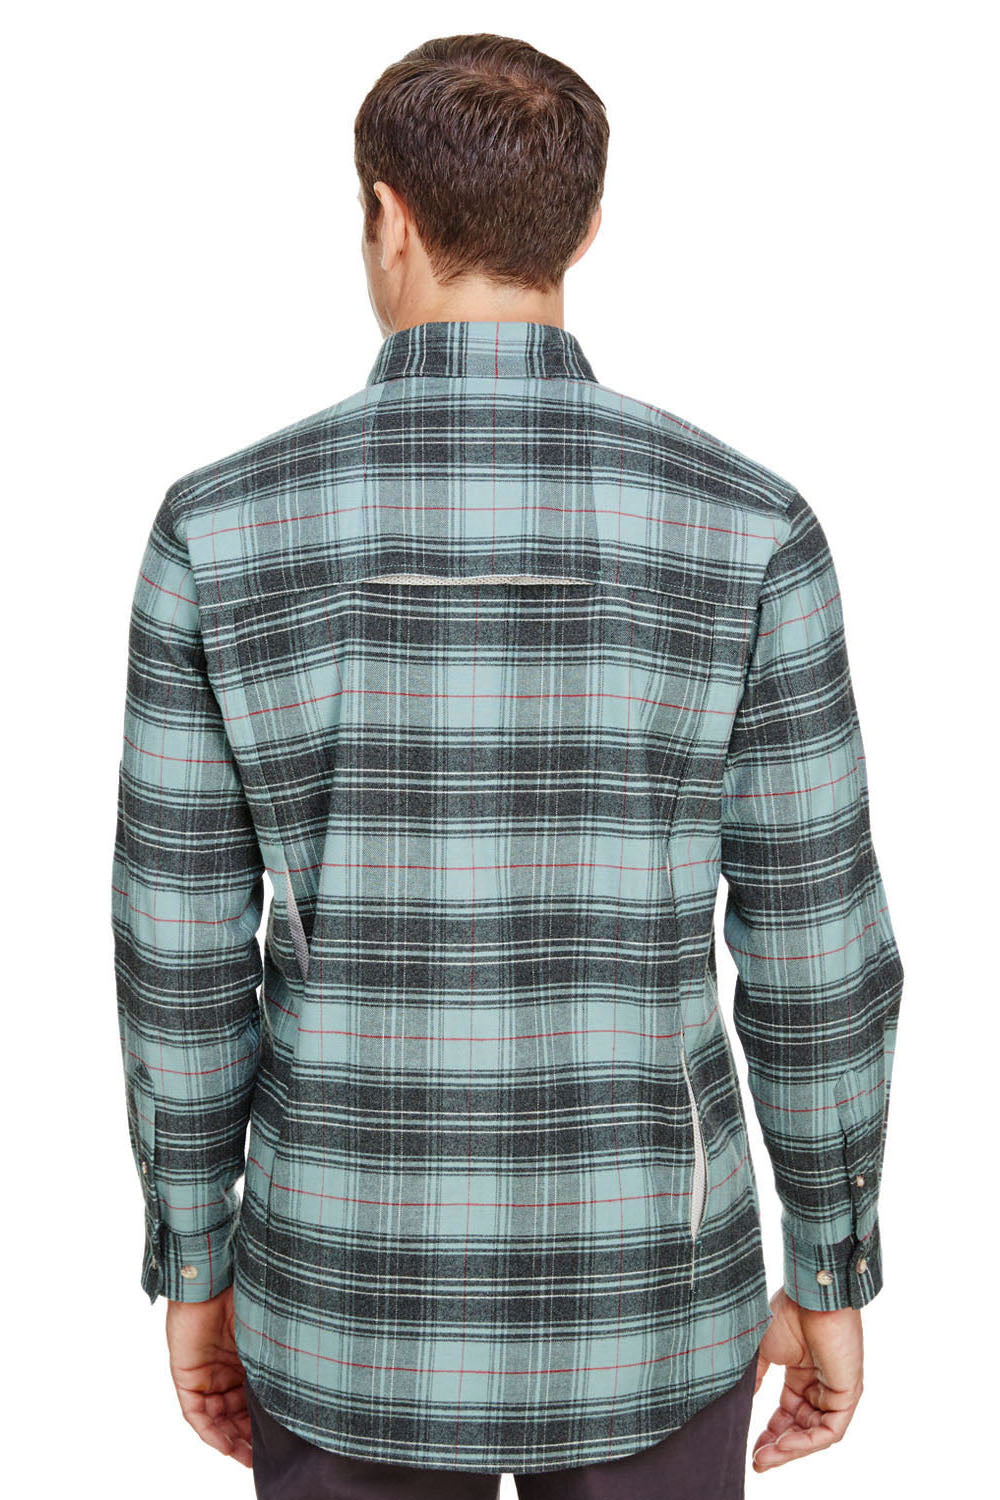 Backpacker BP7091 Mens Stretch Flannel Long Sleeve Button Down Shirt w/ Double Pockets Teal Blue Back